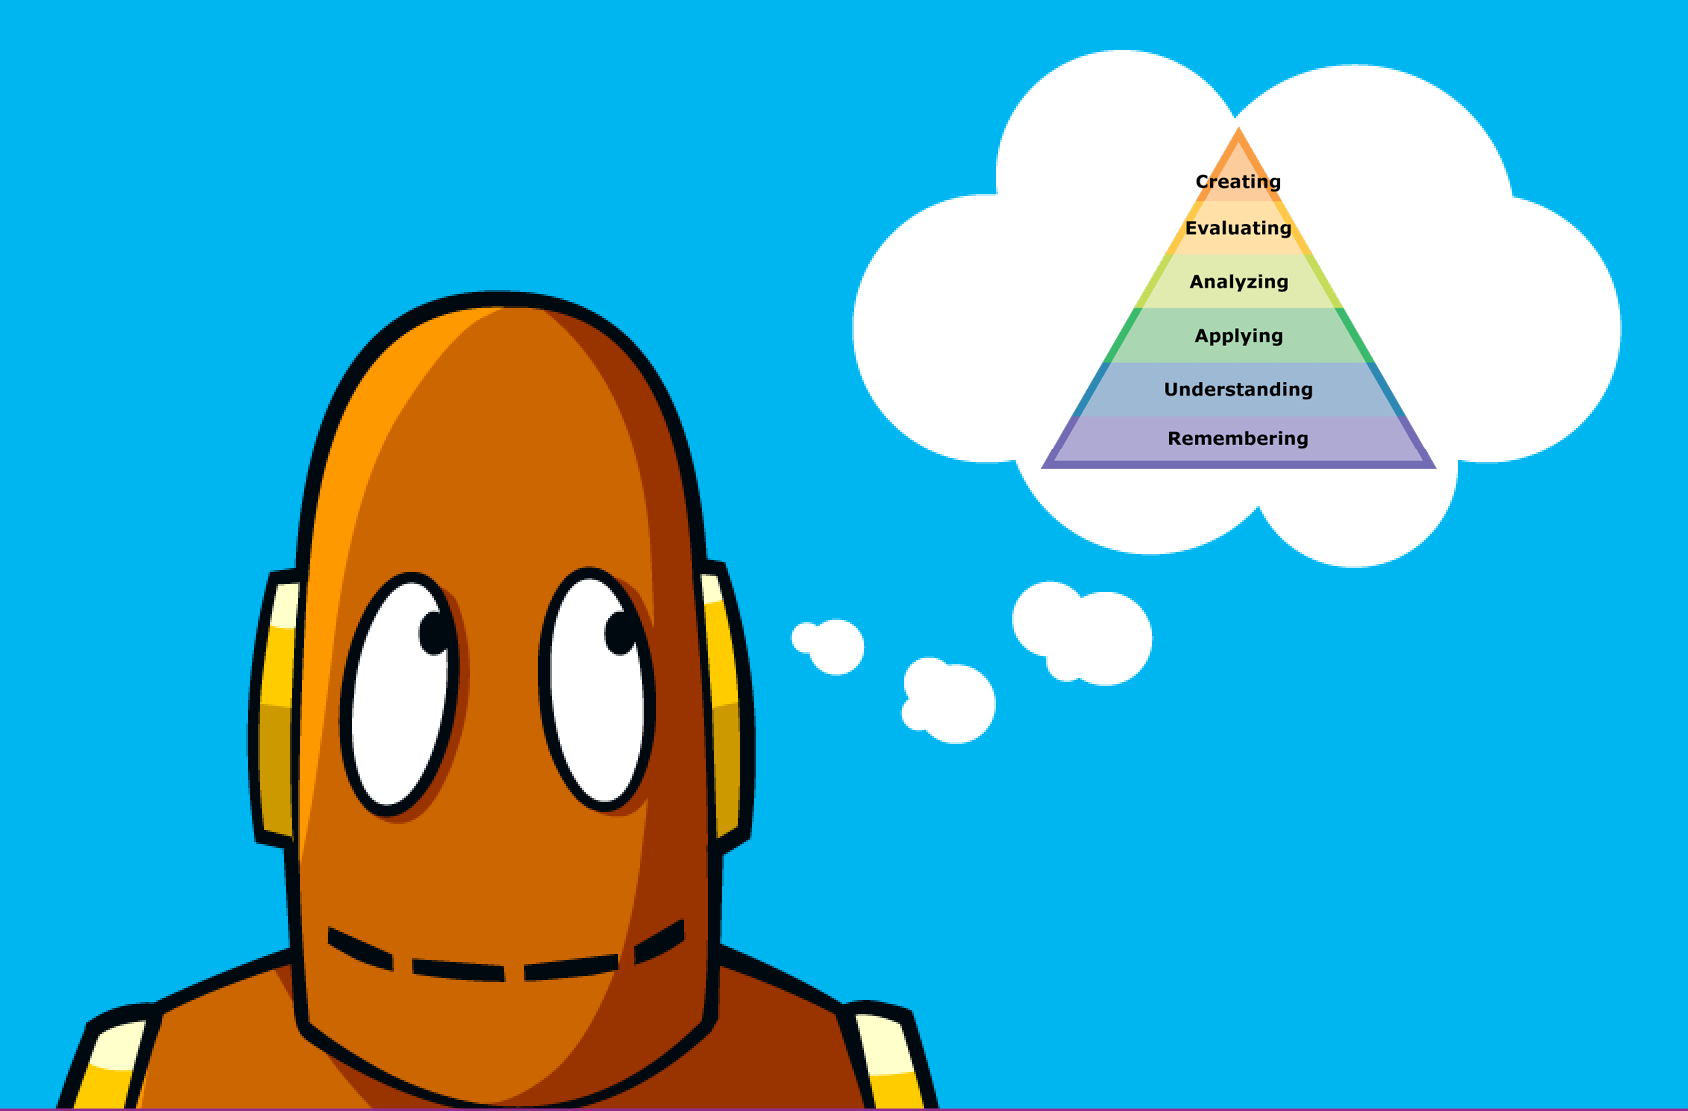 BrainPOP Meets Bloom's Taxonomy